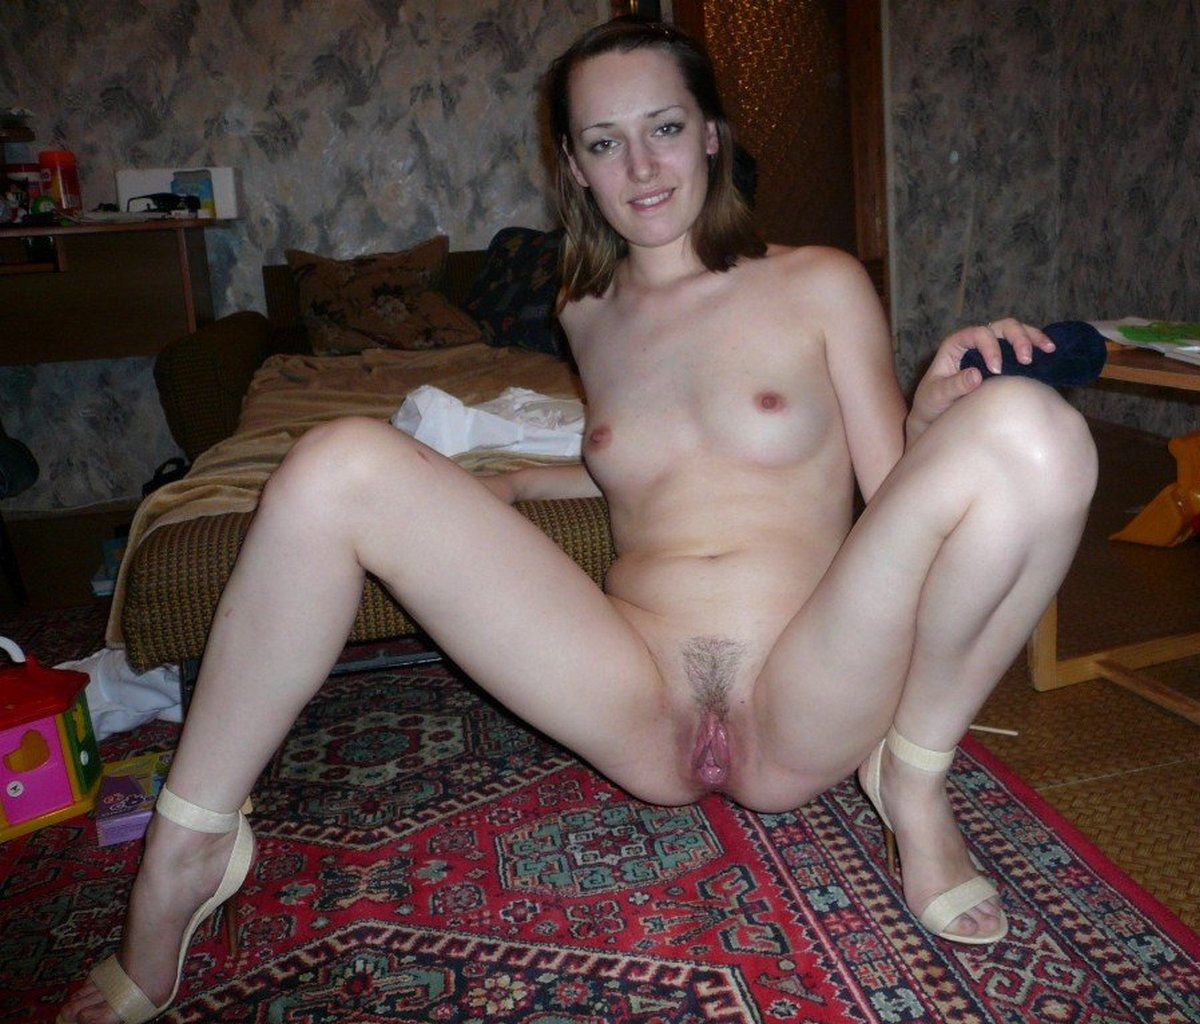 homoseksuell richmeets beautiful free swinger porn